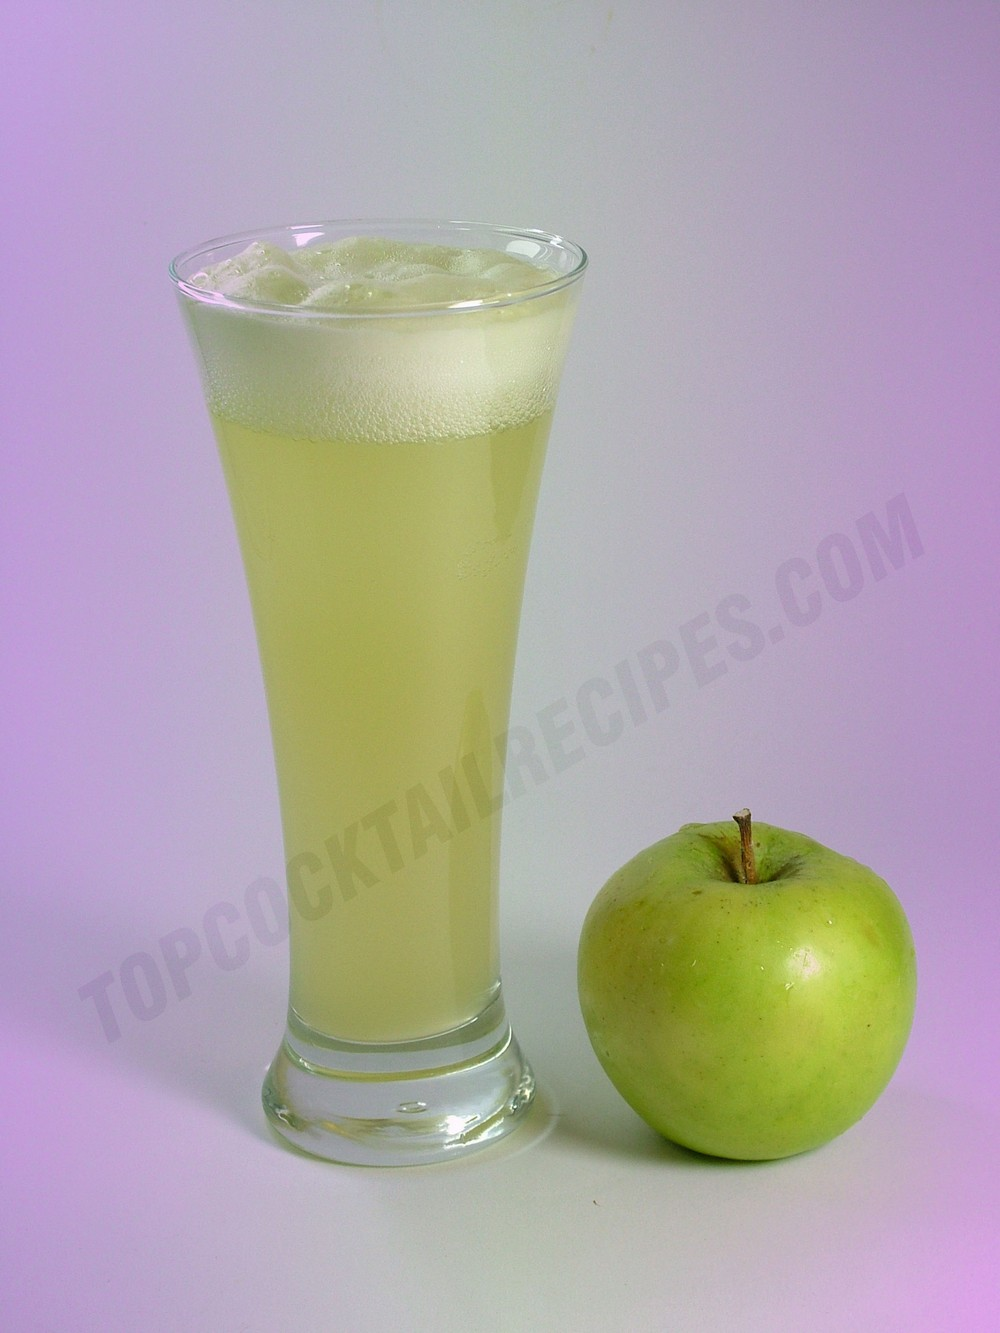 grapes and apples soda drinks